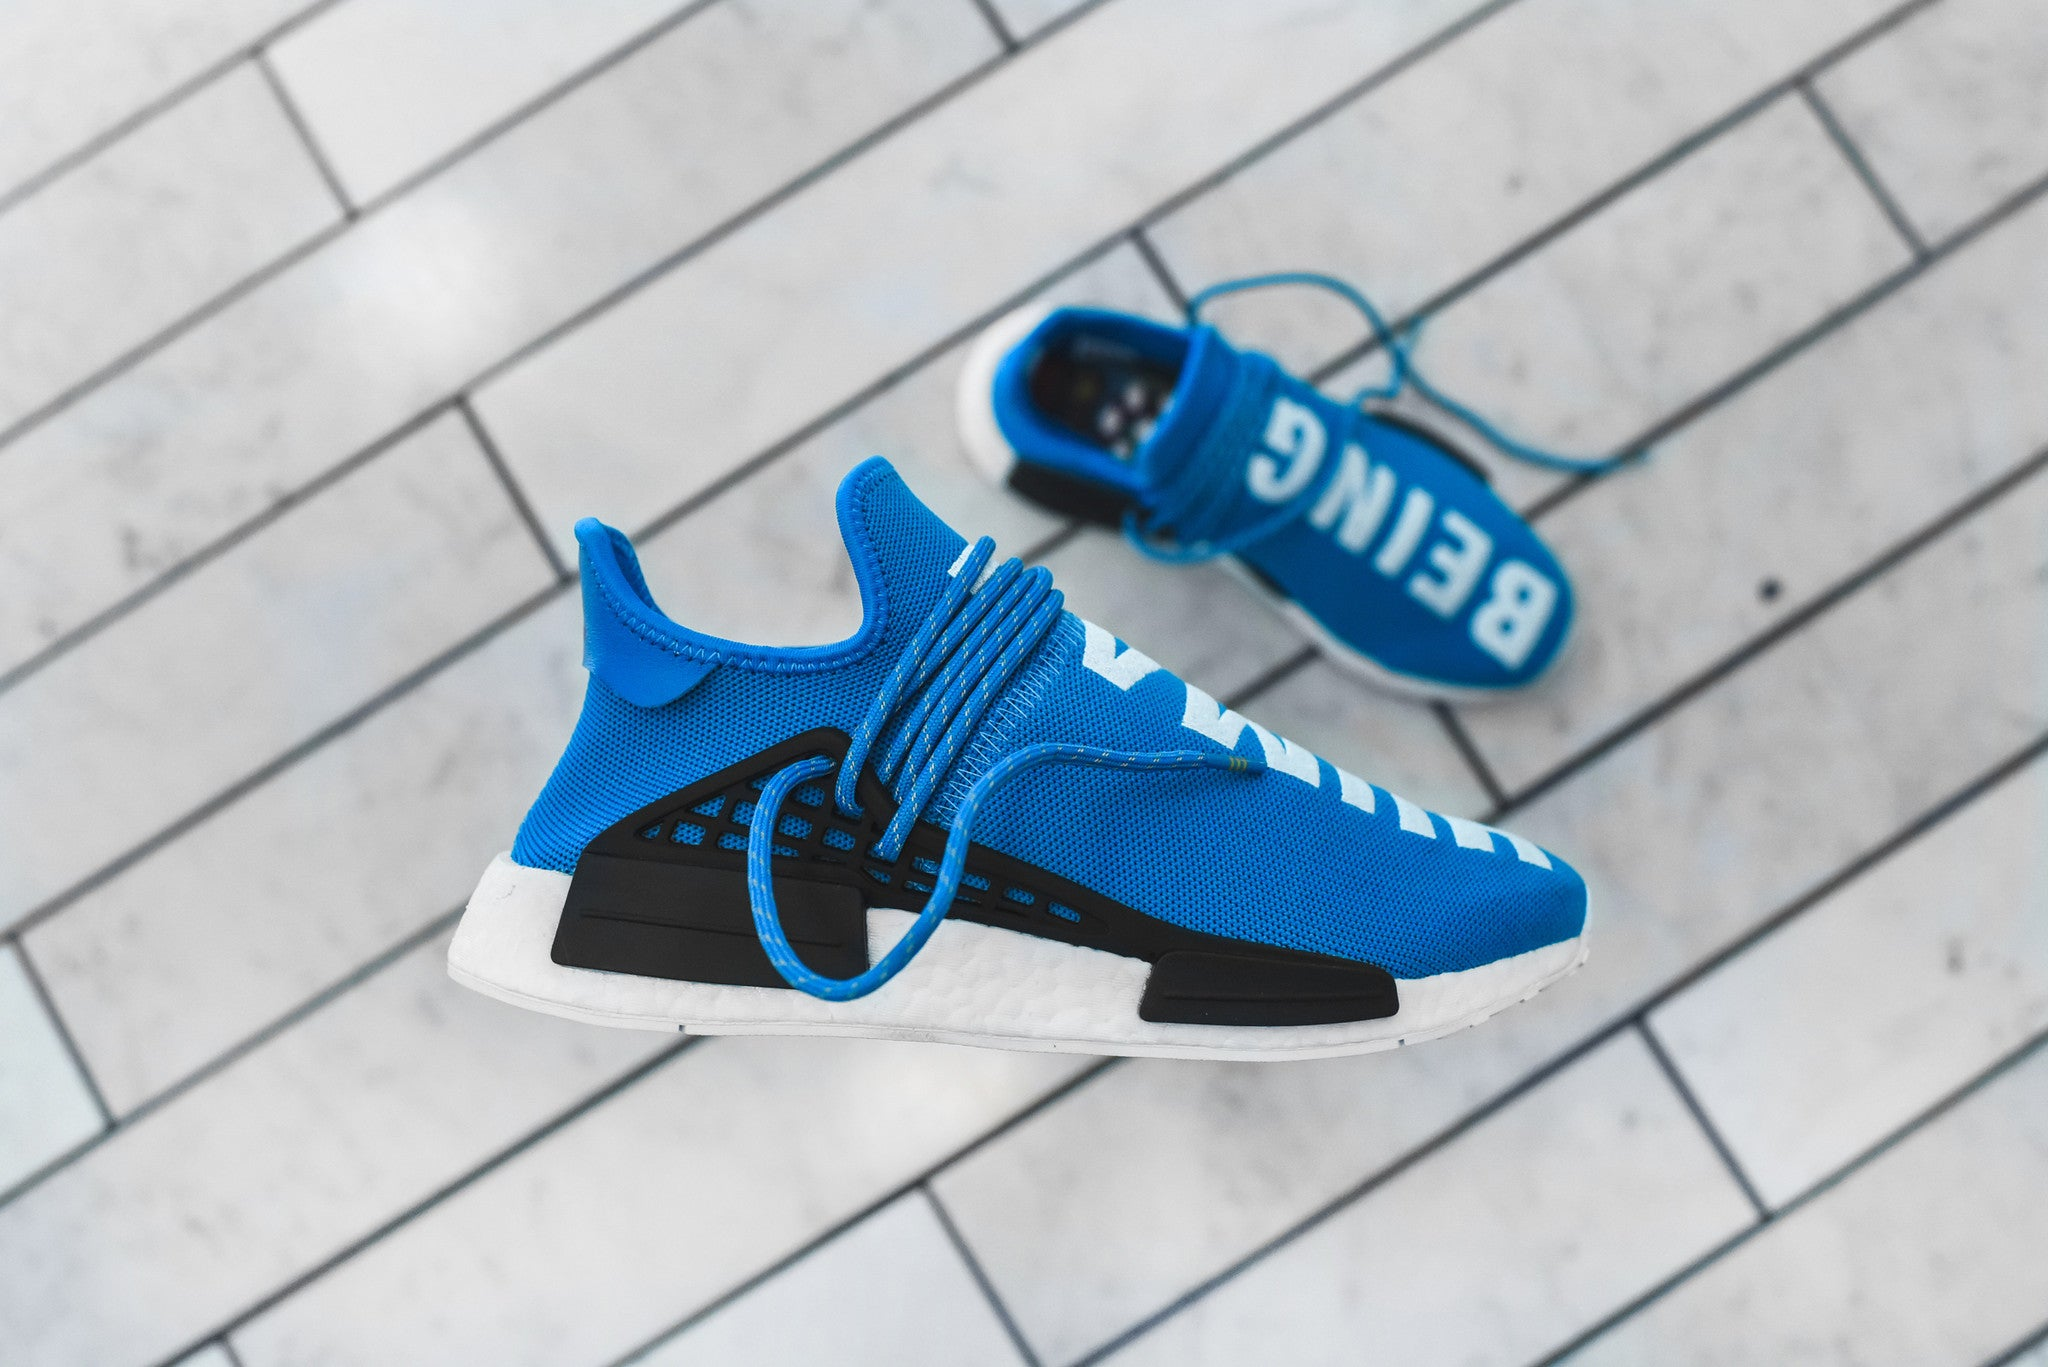 adidas Originals x Pharrell Williams HU Race NMD - Blue